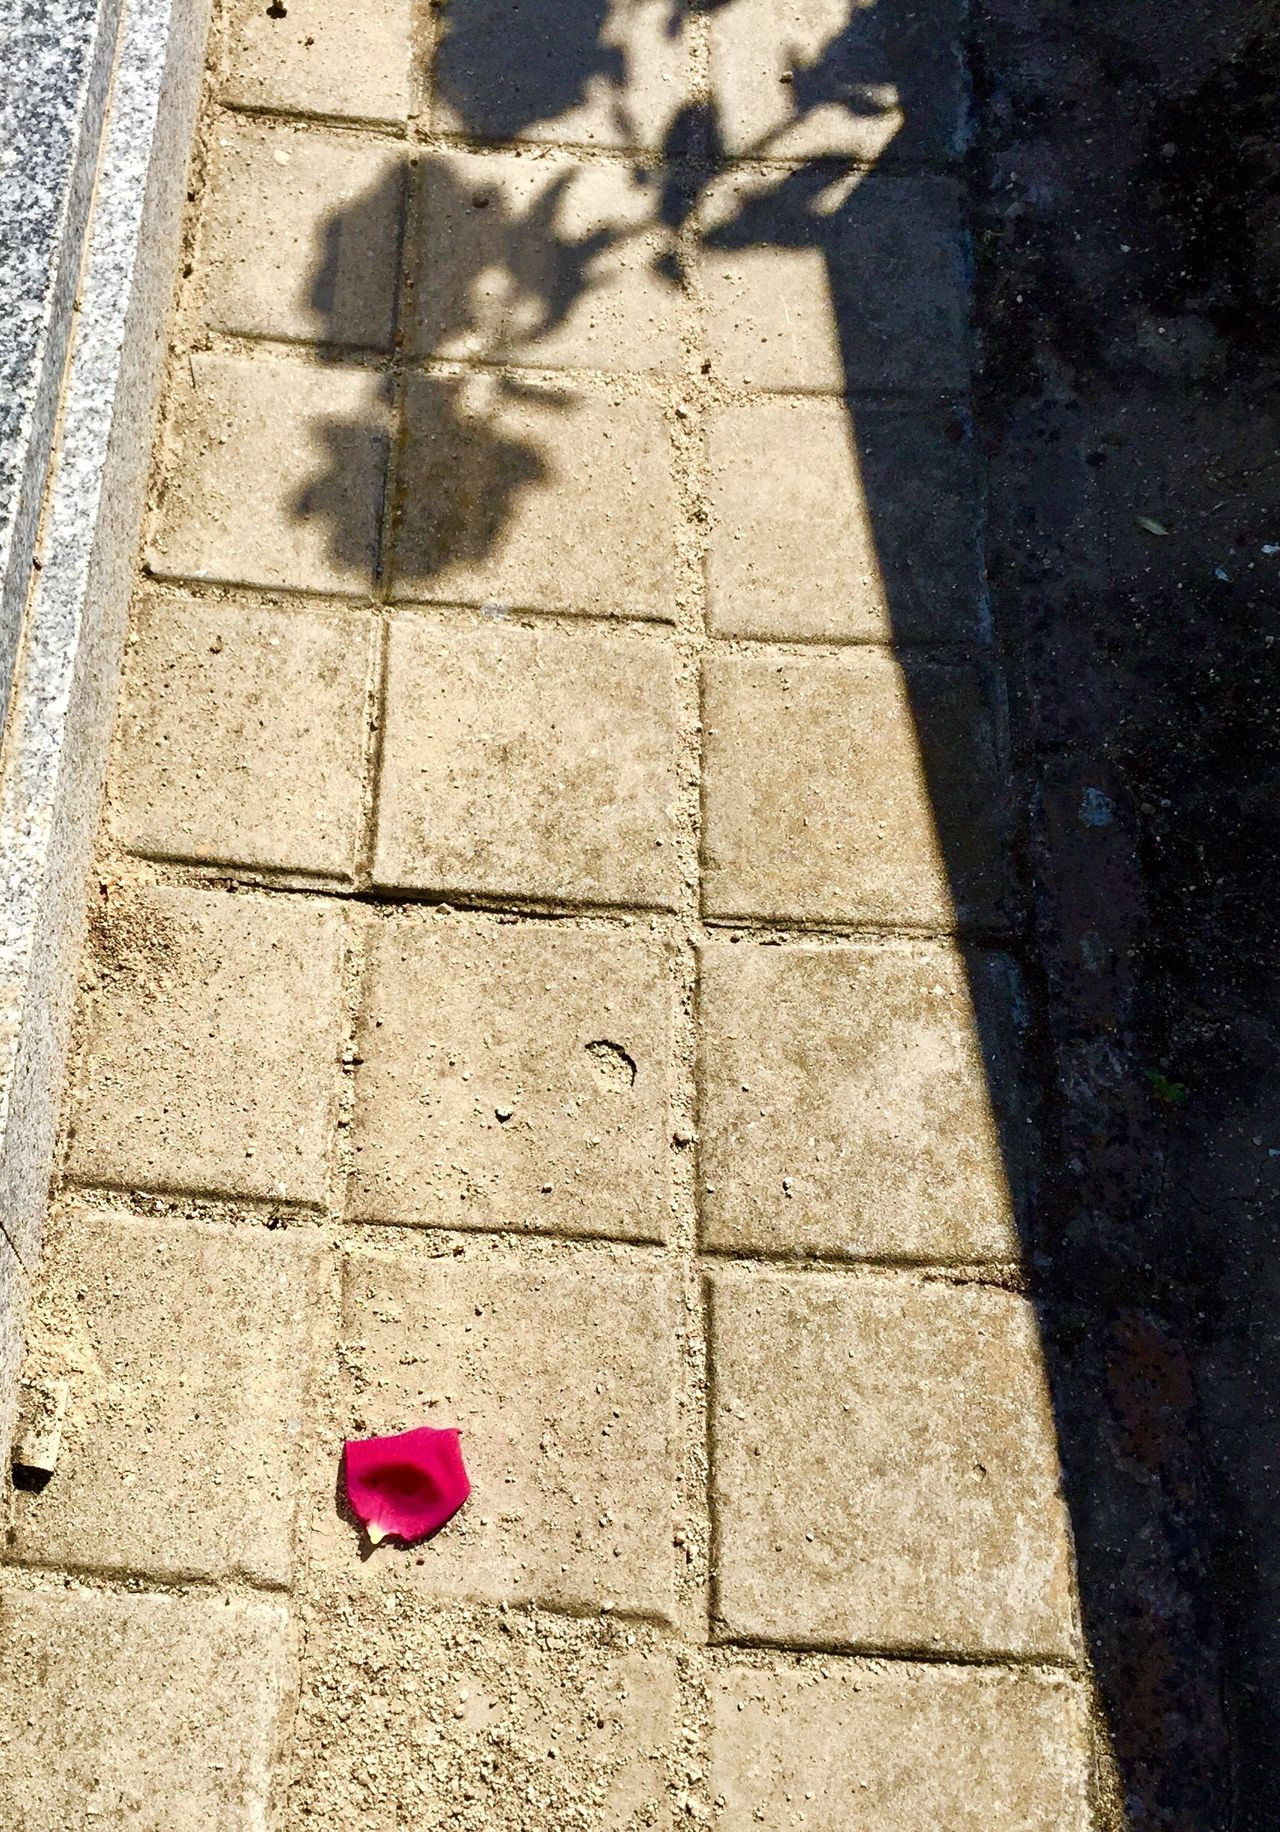 Shadow High Angle View Sunlight Day Outdoors No People Nature Petal Of Rose